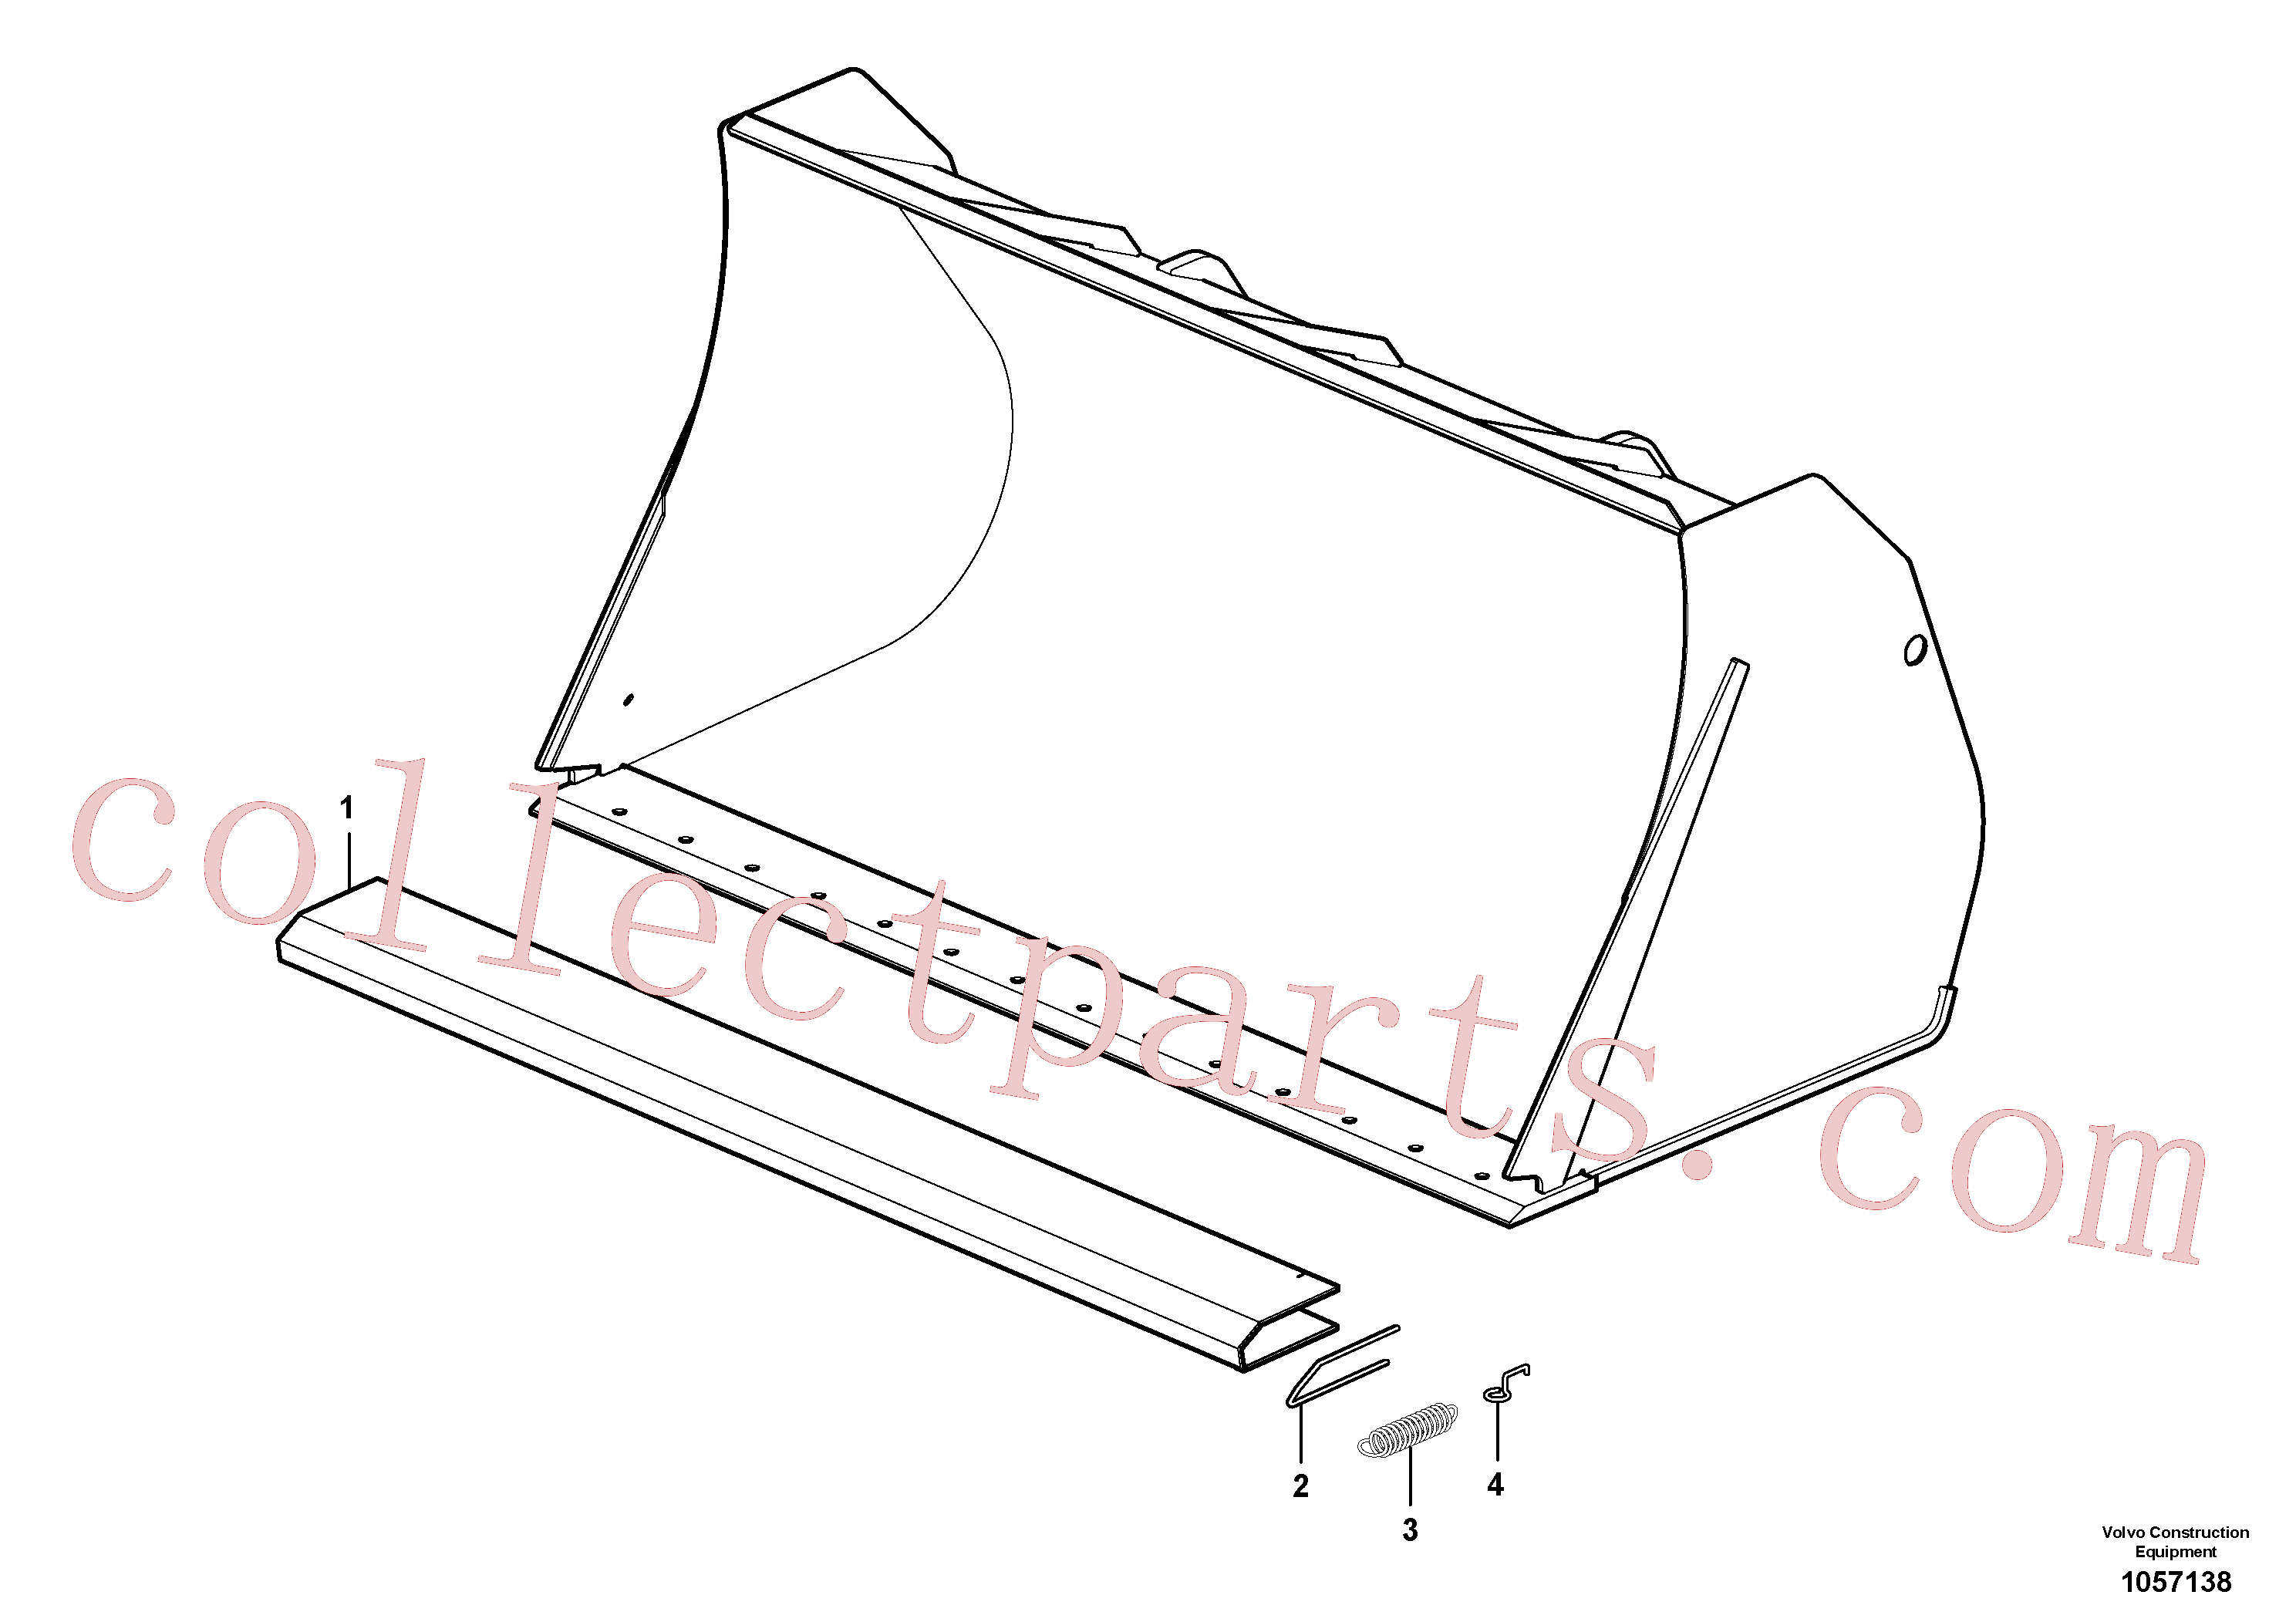 ZM4414424 for Volvo Protecting plate(1057138 assembly)